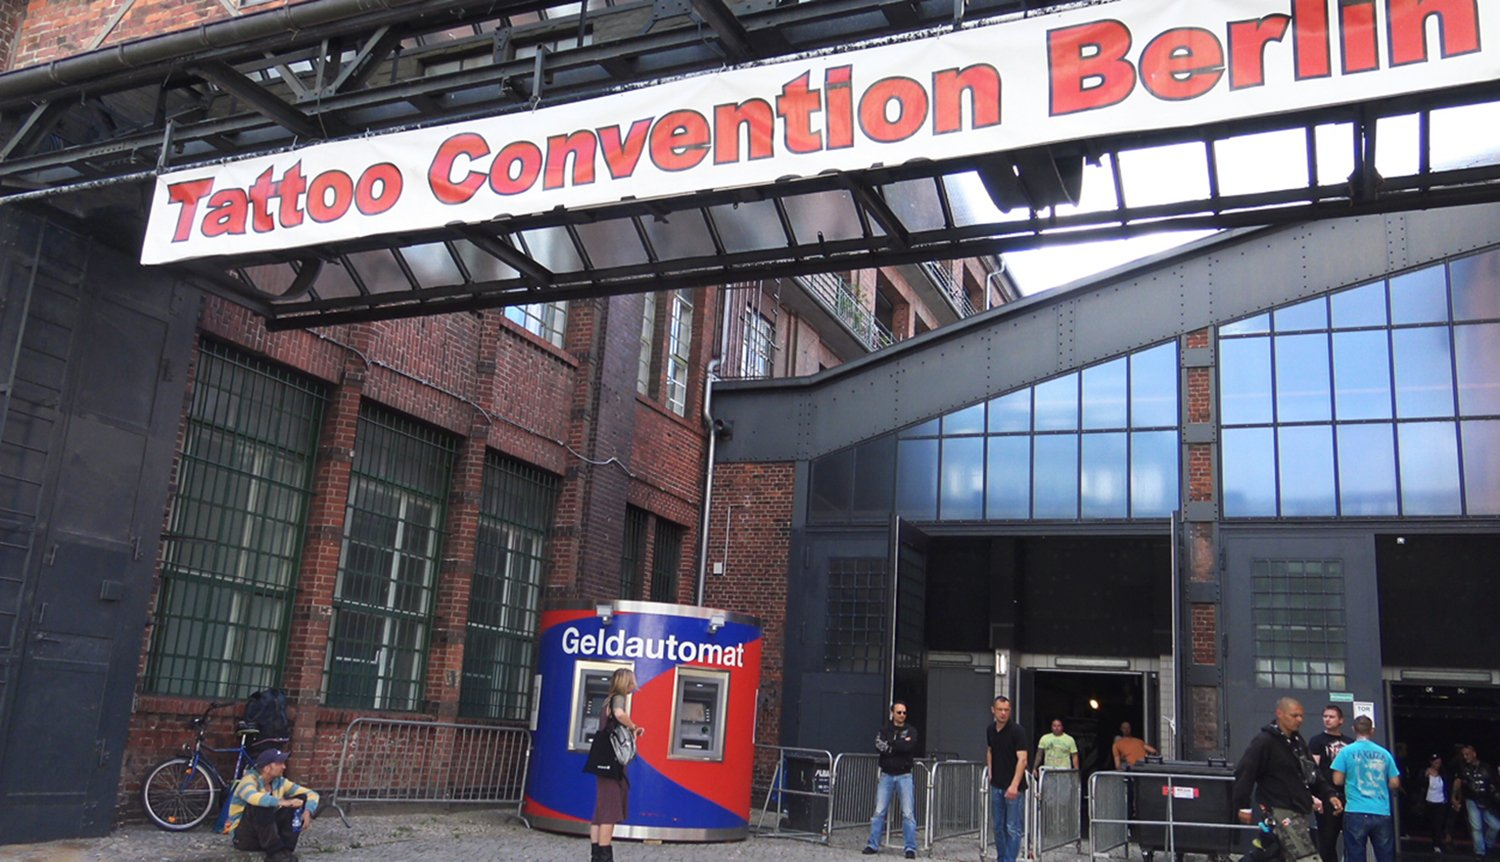 tattoo convention berlin, arena berlin, front building